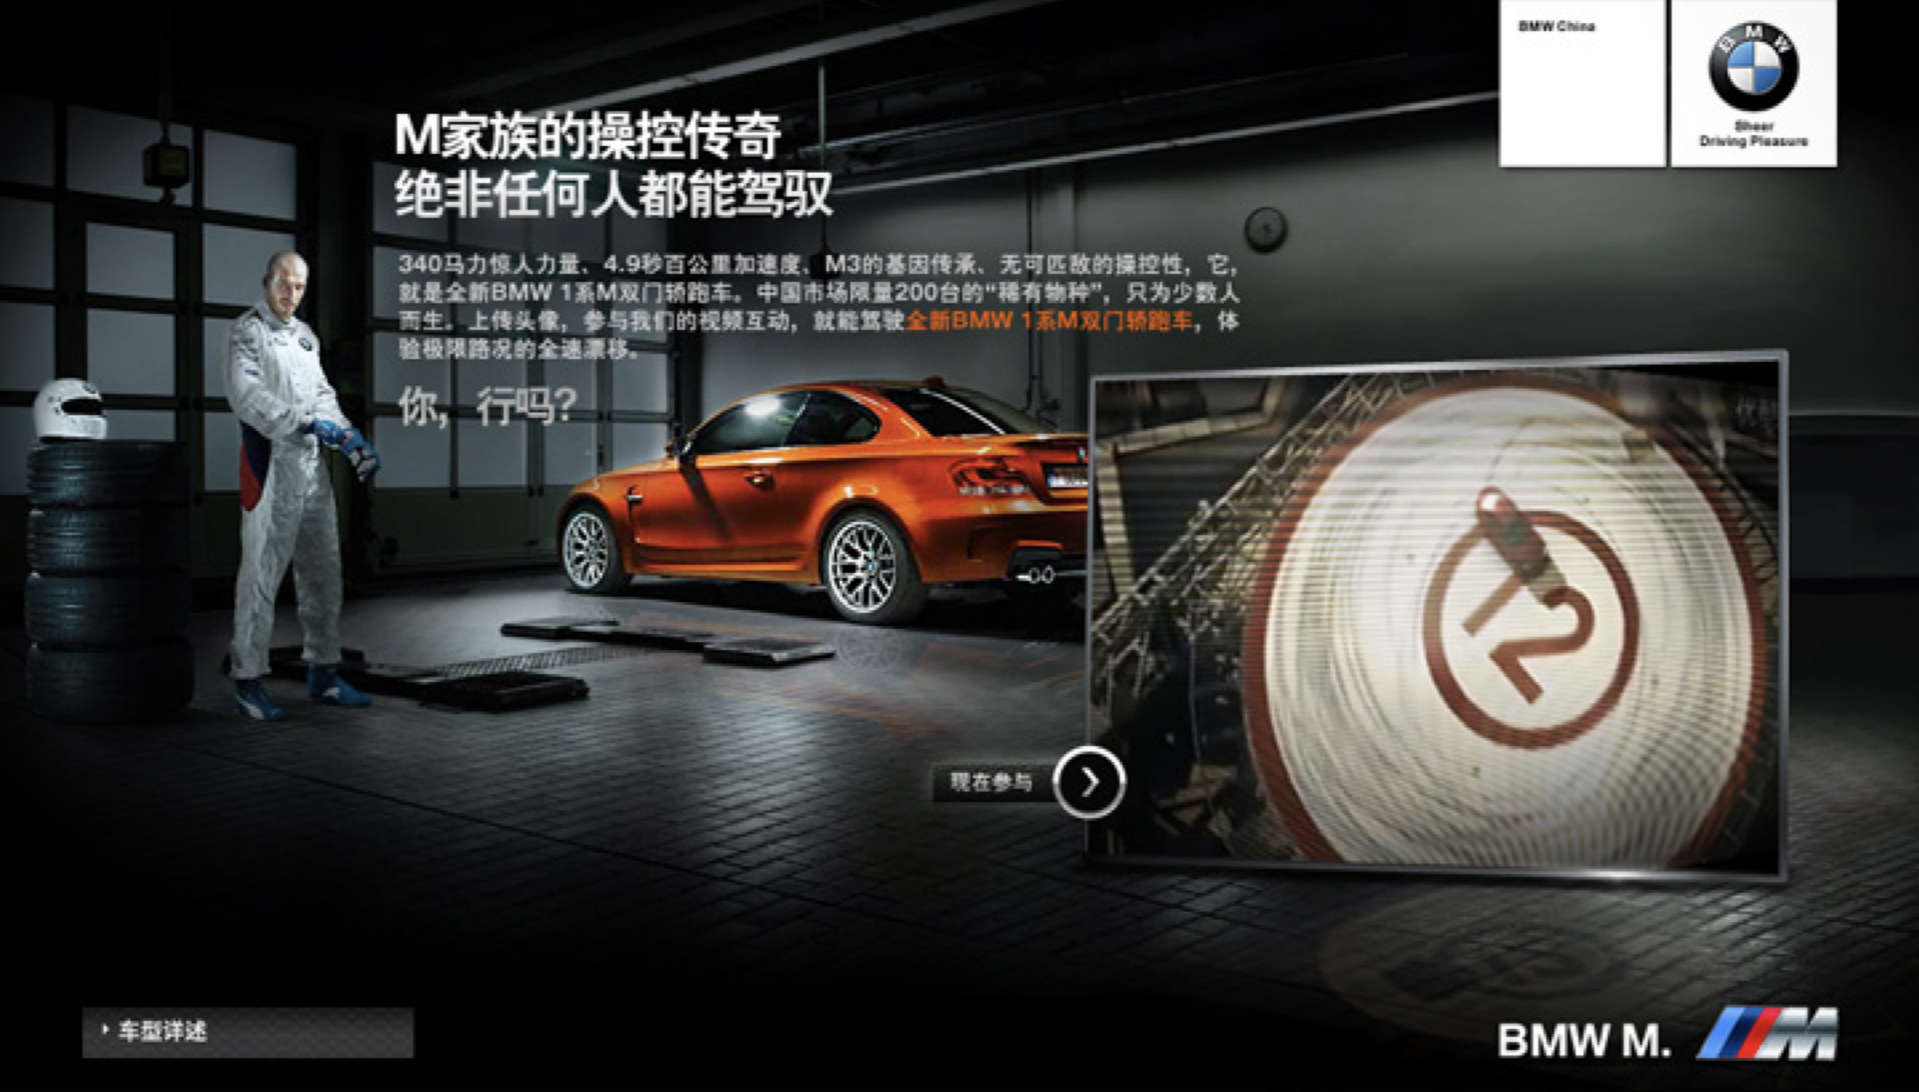 BMW_MSeries_01